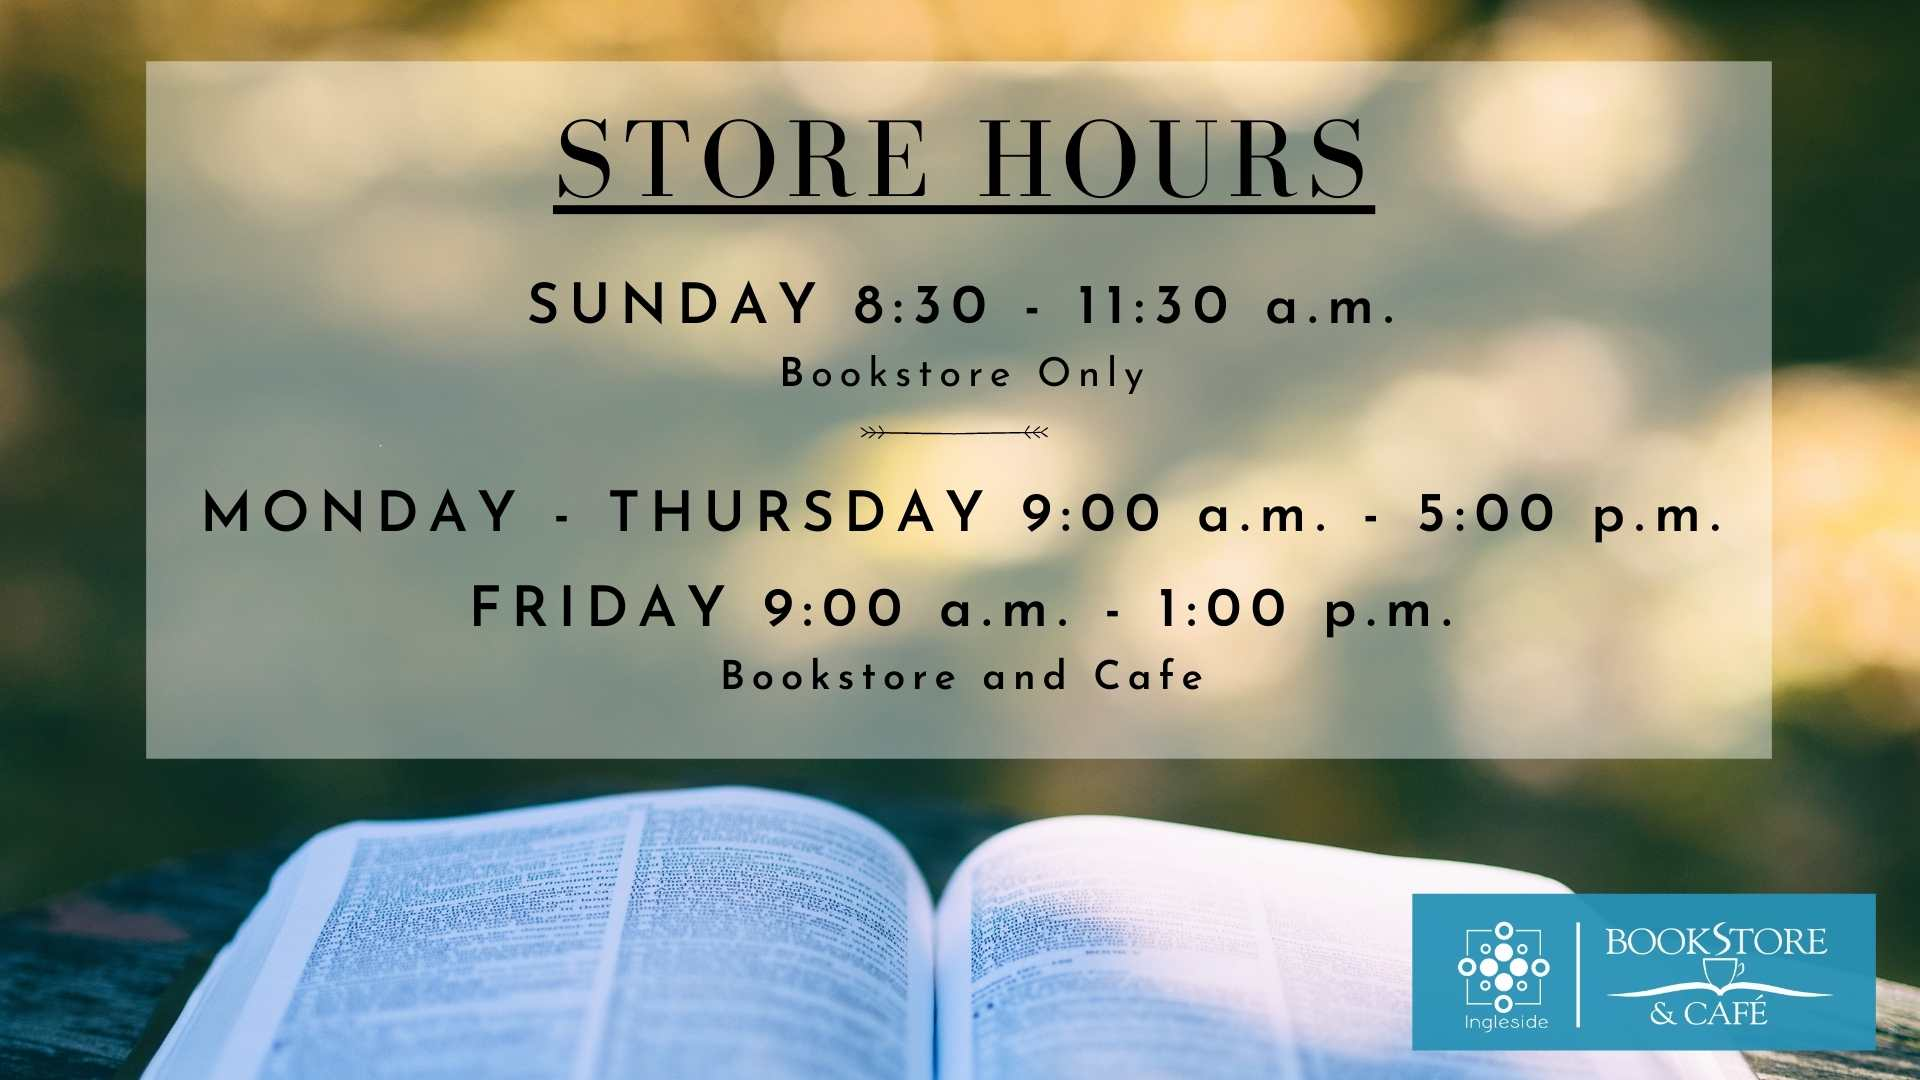 Current Store Hours